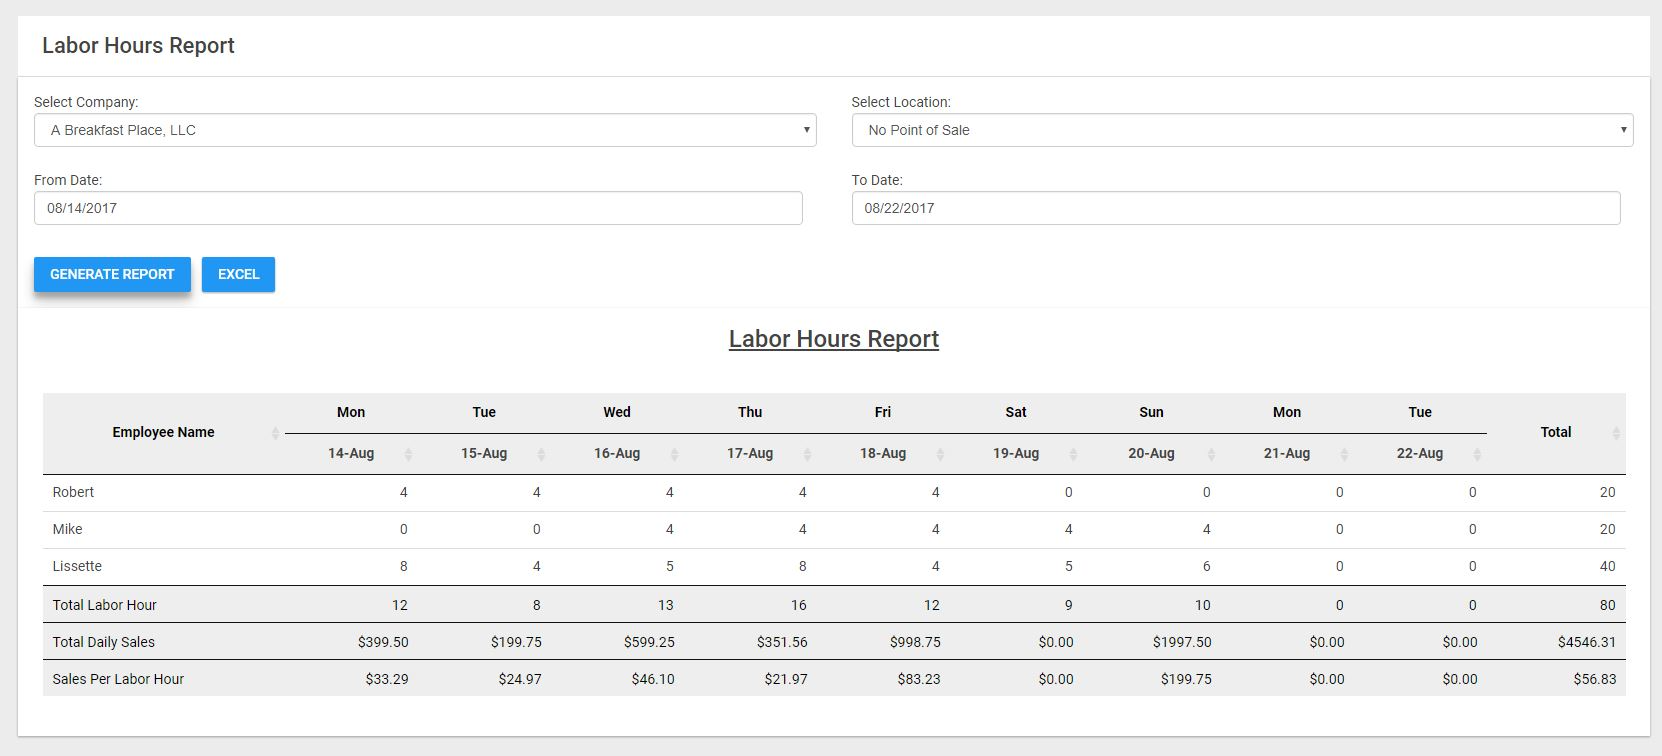 Labor hours reports can be generated to determine the sales value per labor hour